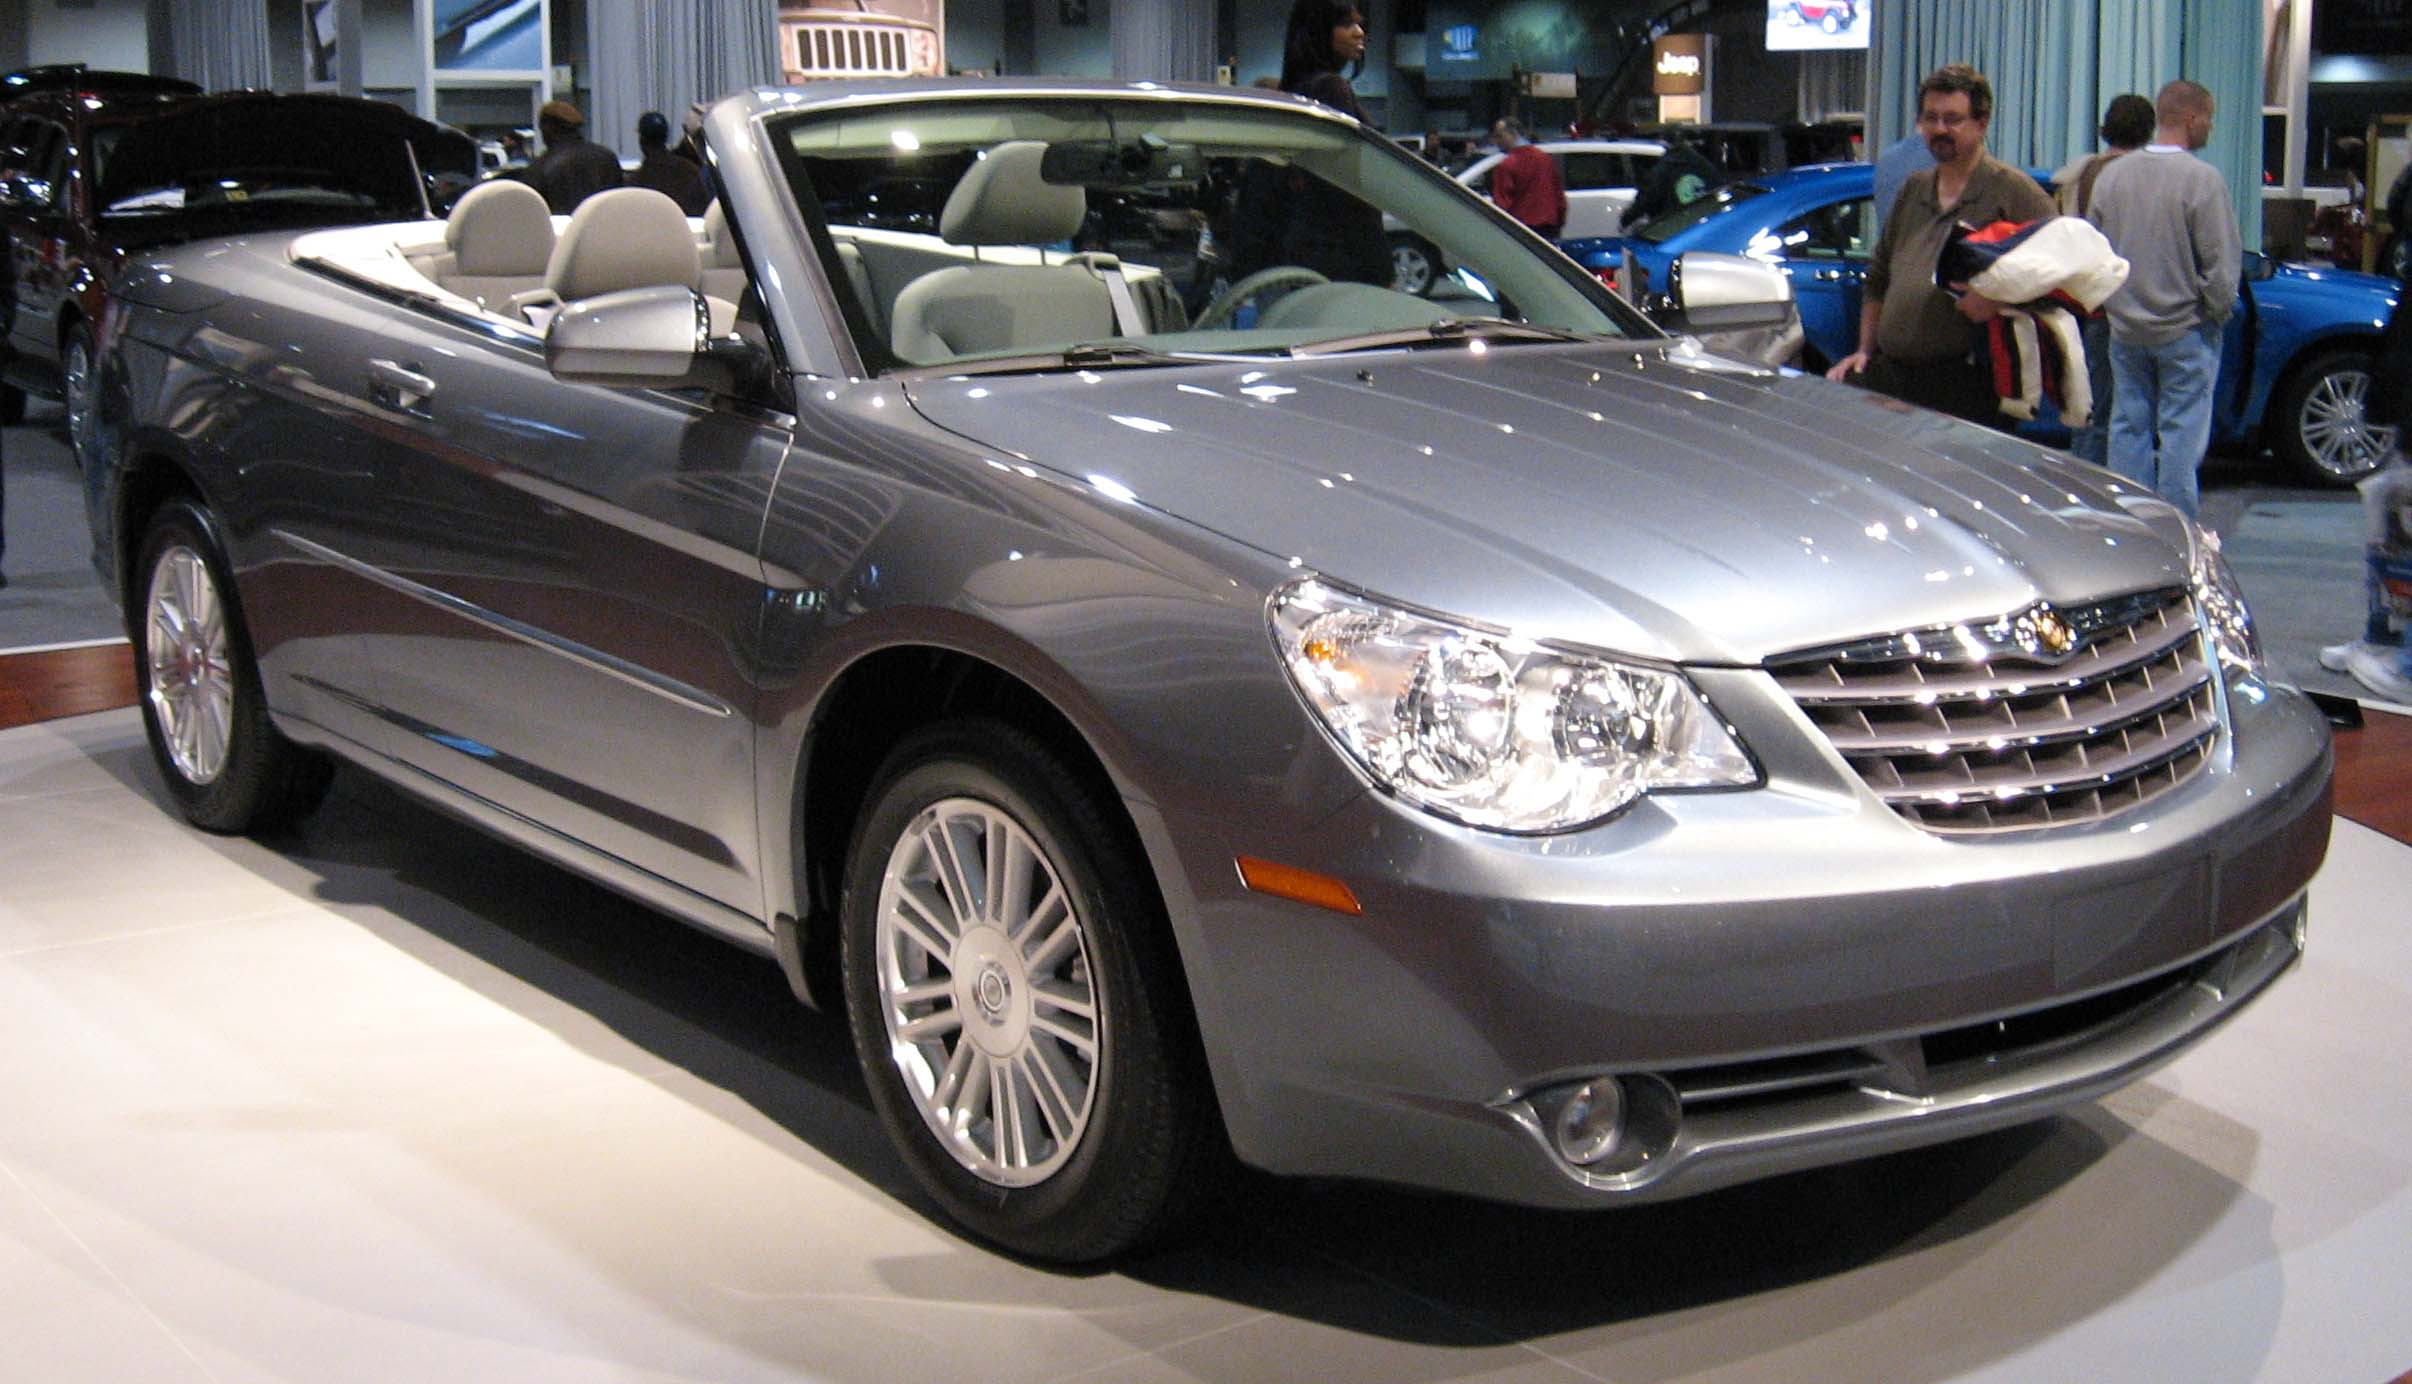 file 2008 chrysler sebring convertible. Black Bedroom Furniture Sets. Home Design Ideas